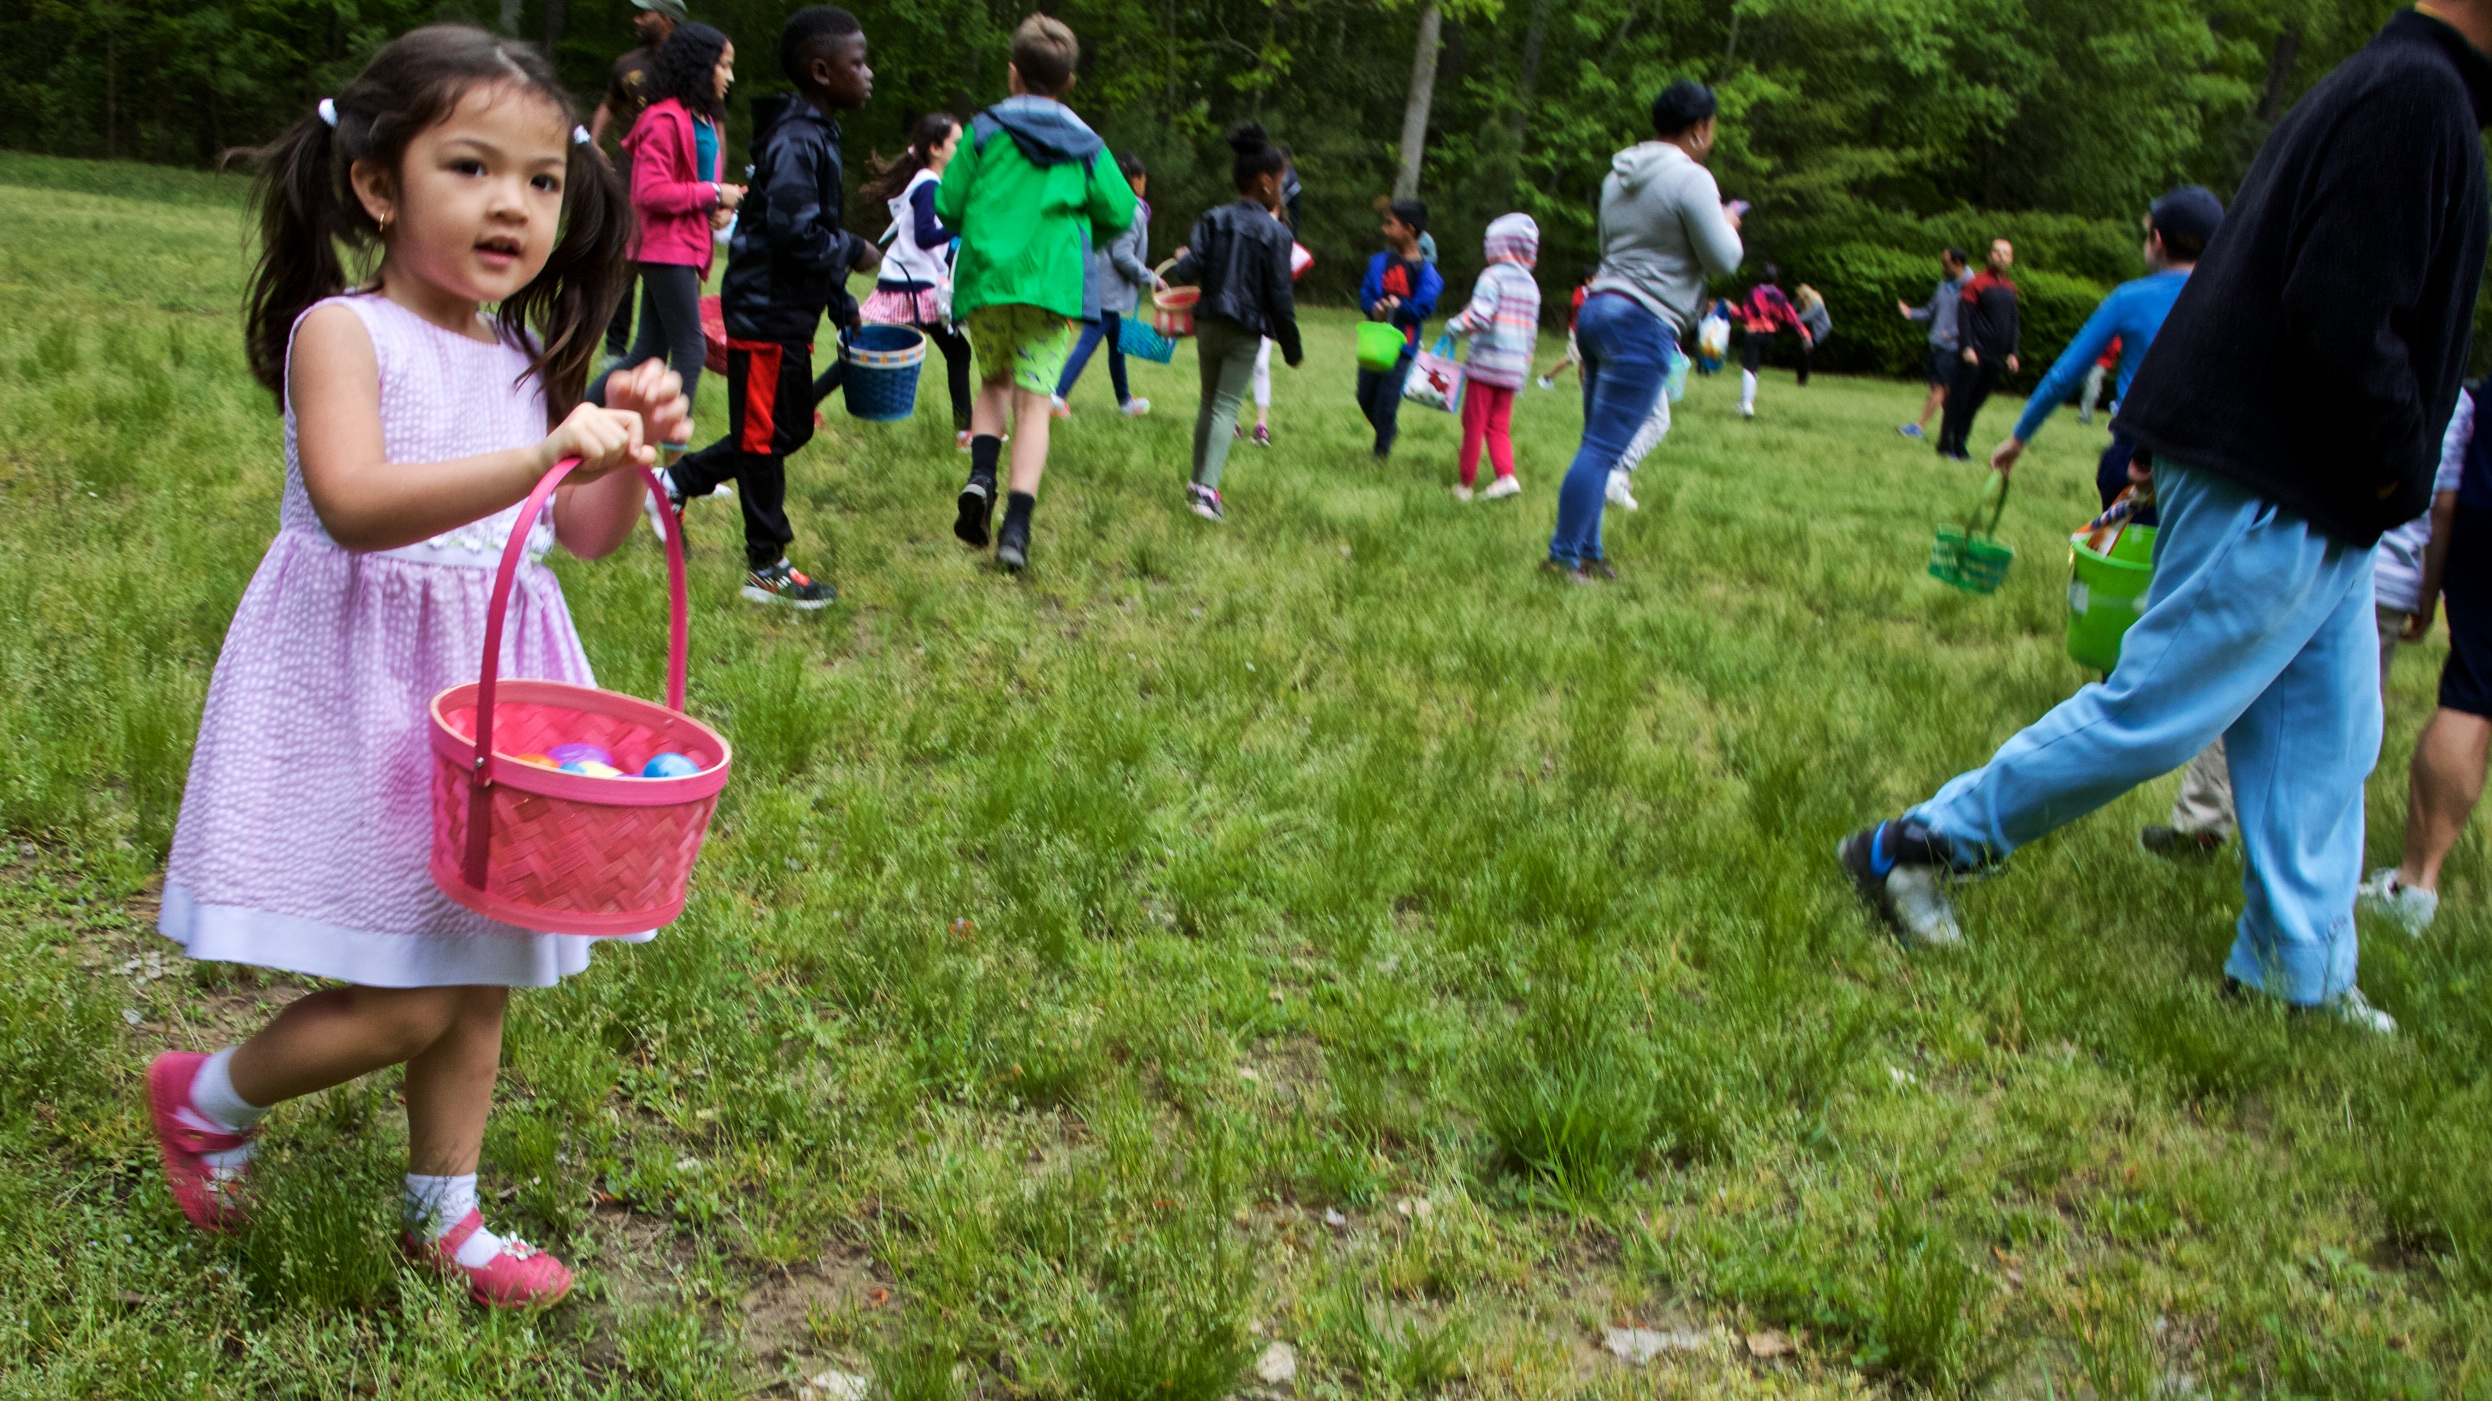 2019.4.20 Raleigh NPHC Easter Egg Hunt by StanChambersJr Photography 29.jpg